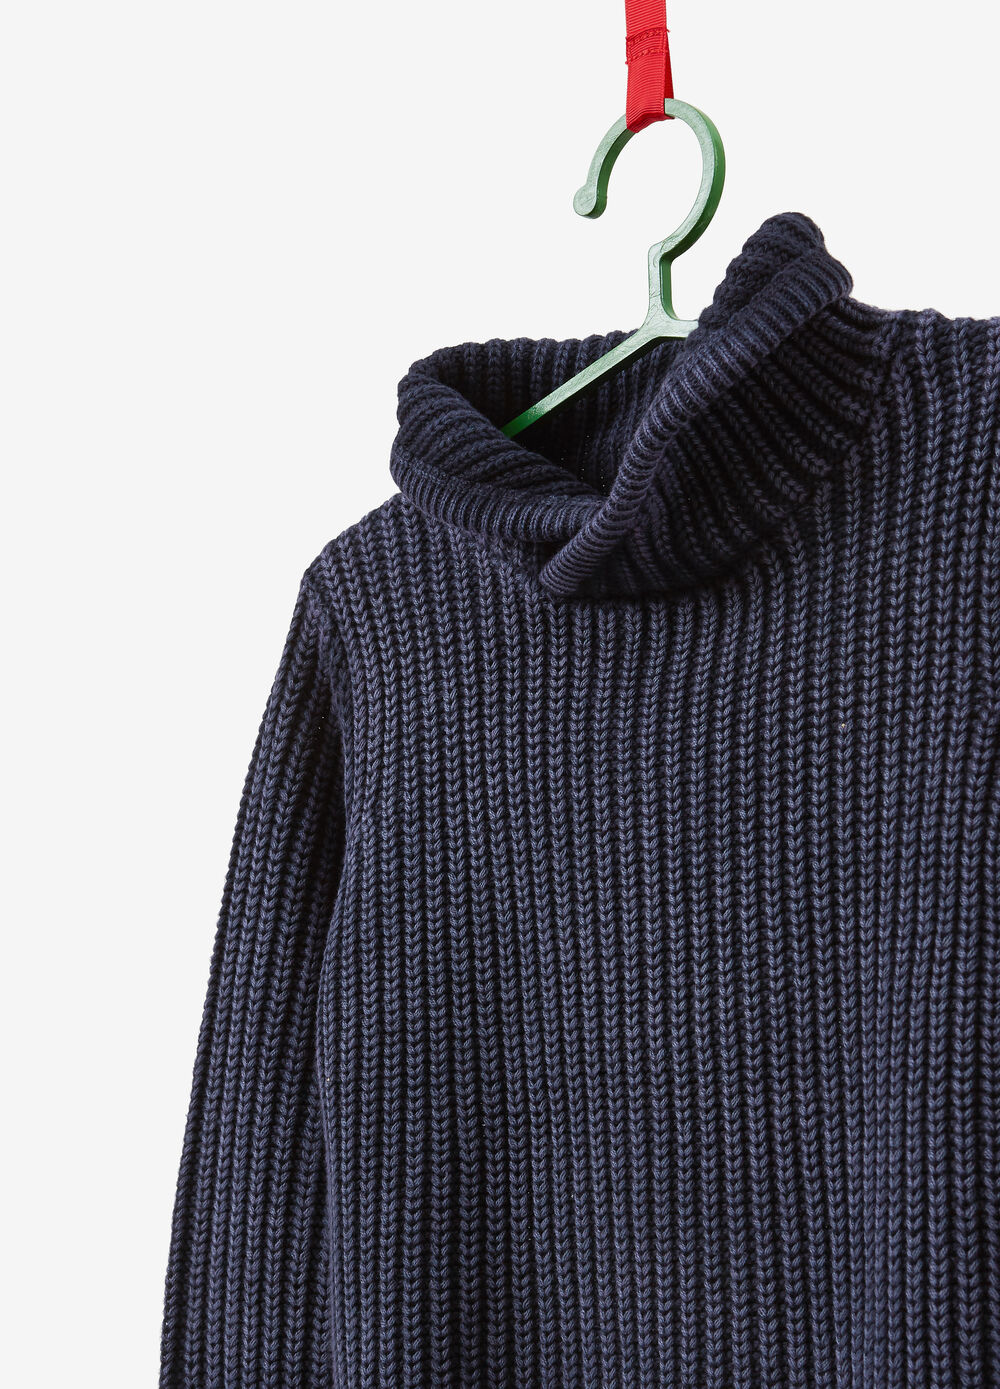 100% cotton knitted pullover with high neck